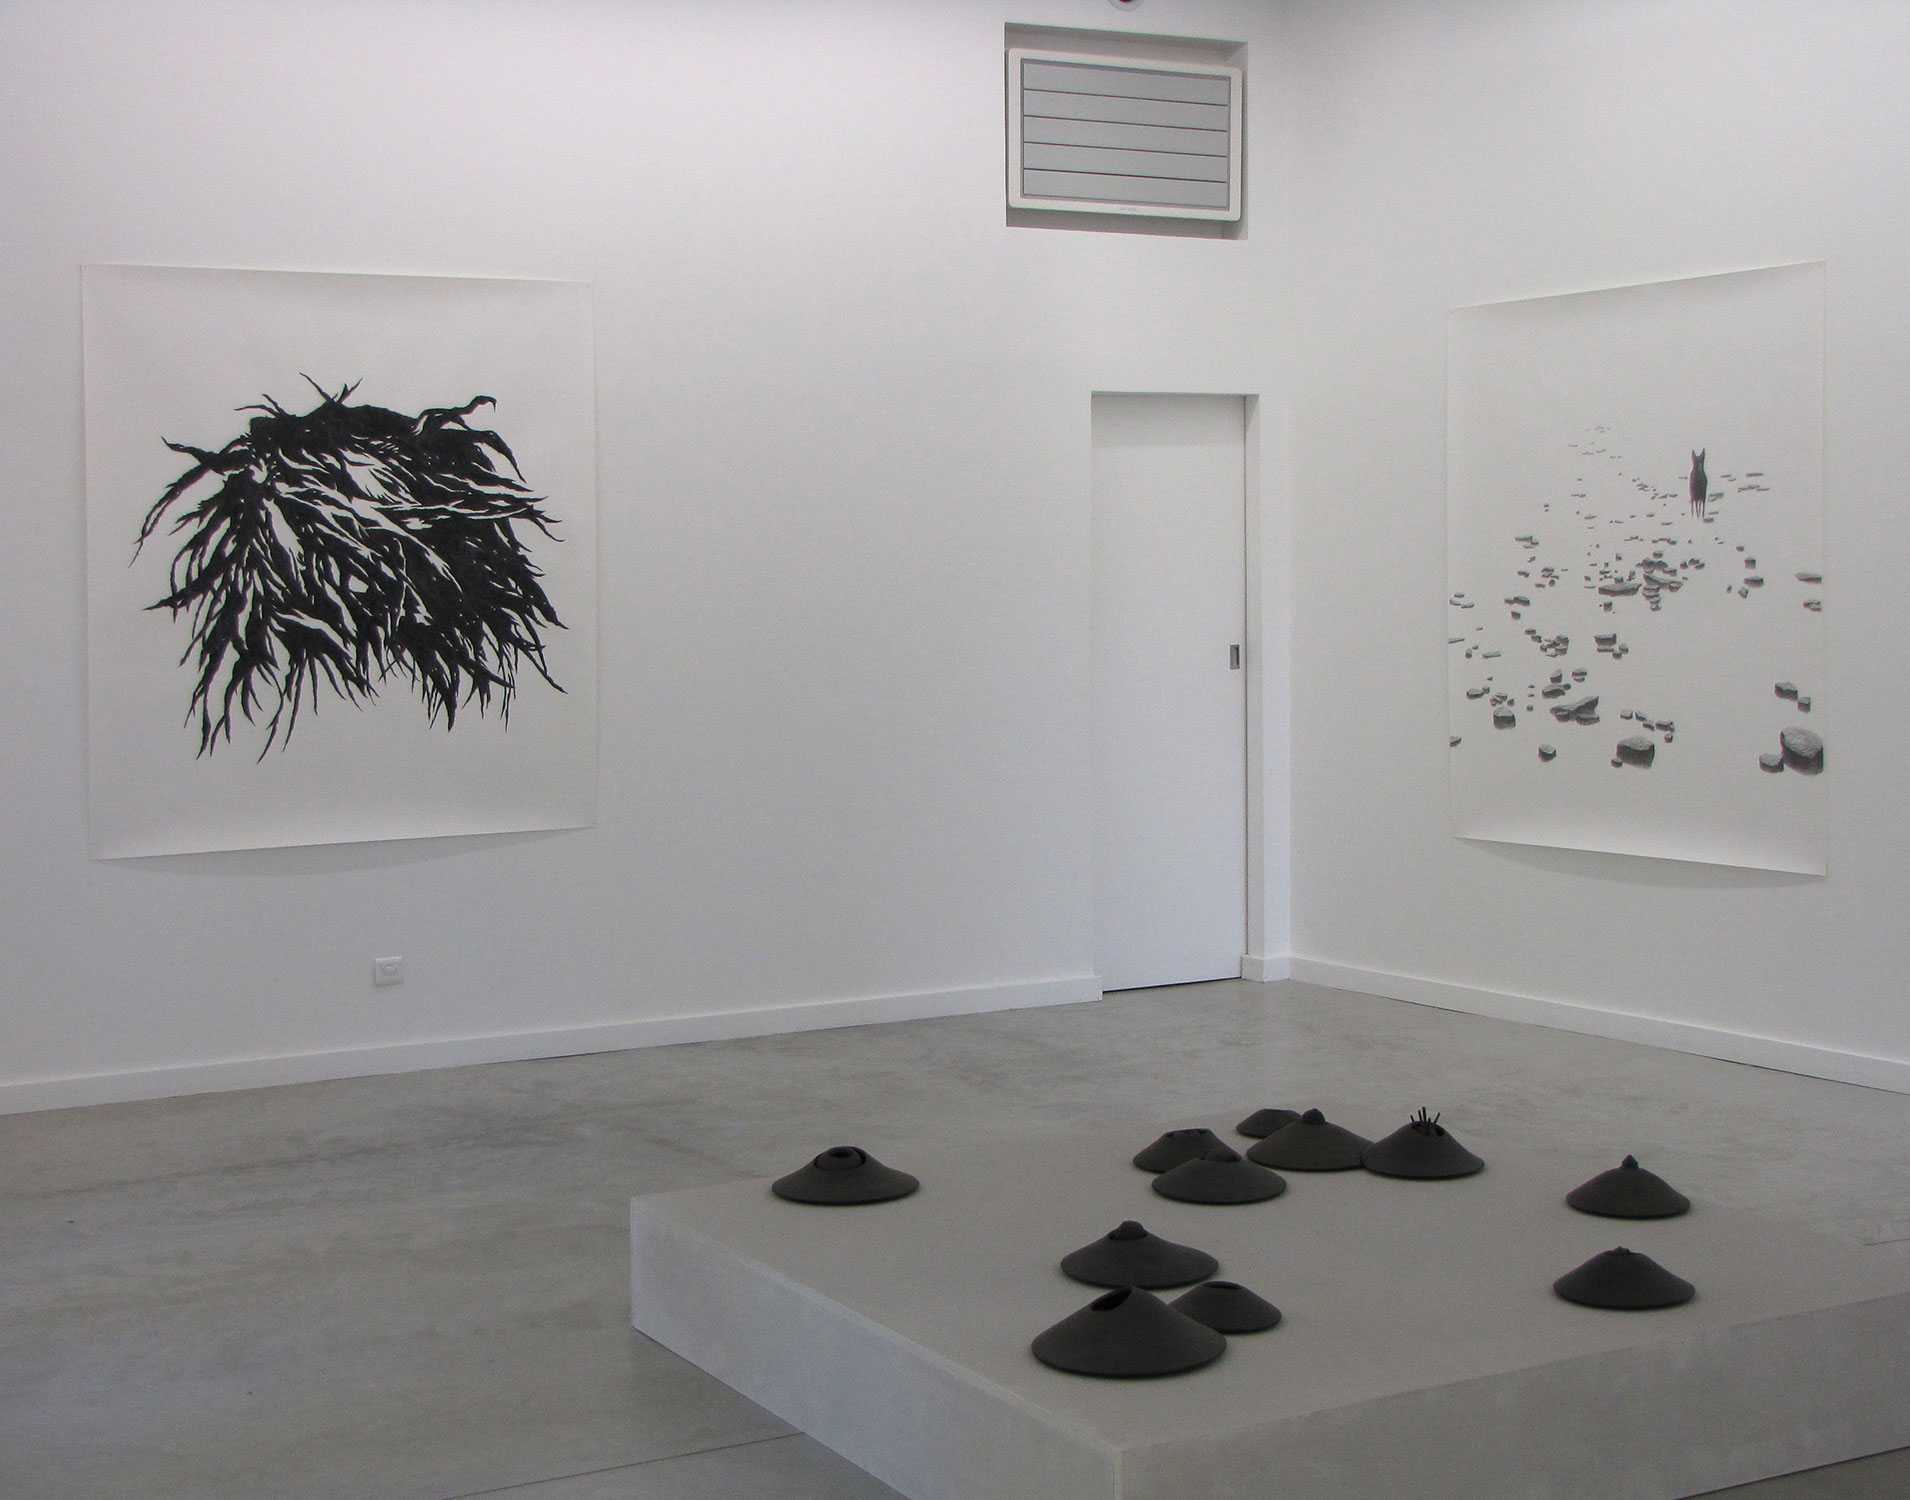 exposition <i>Zone</i>, galerie le 116art, 2009